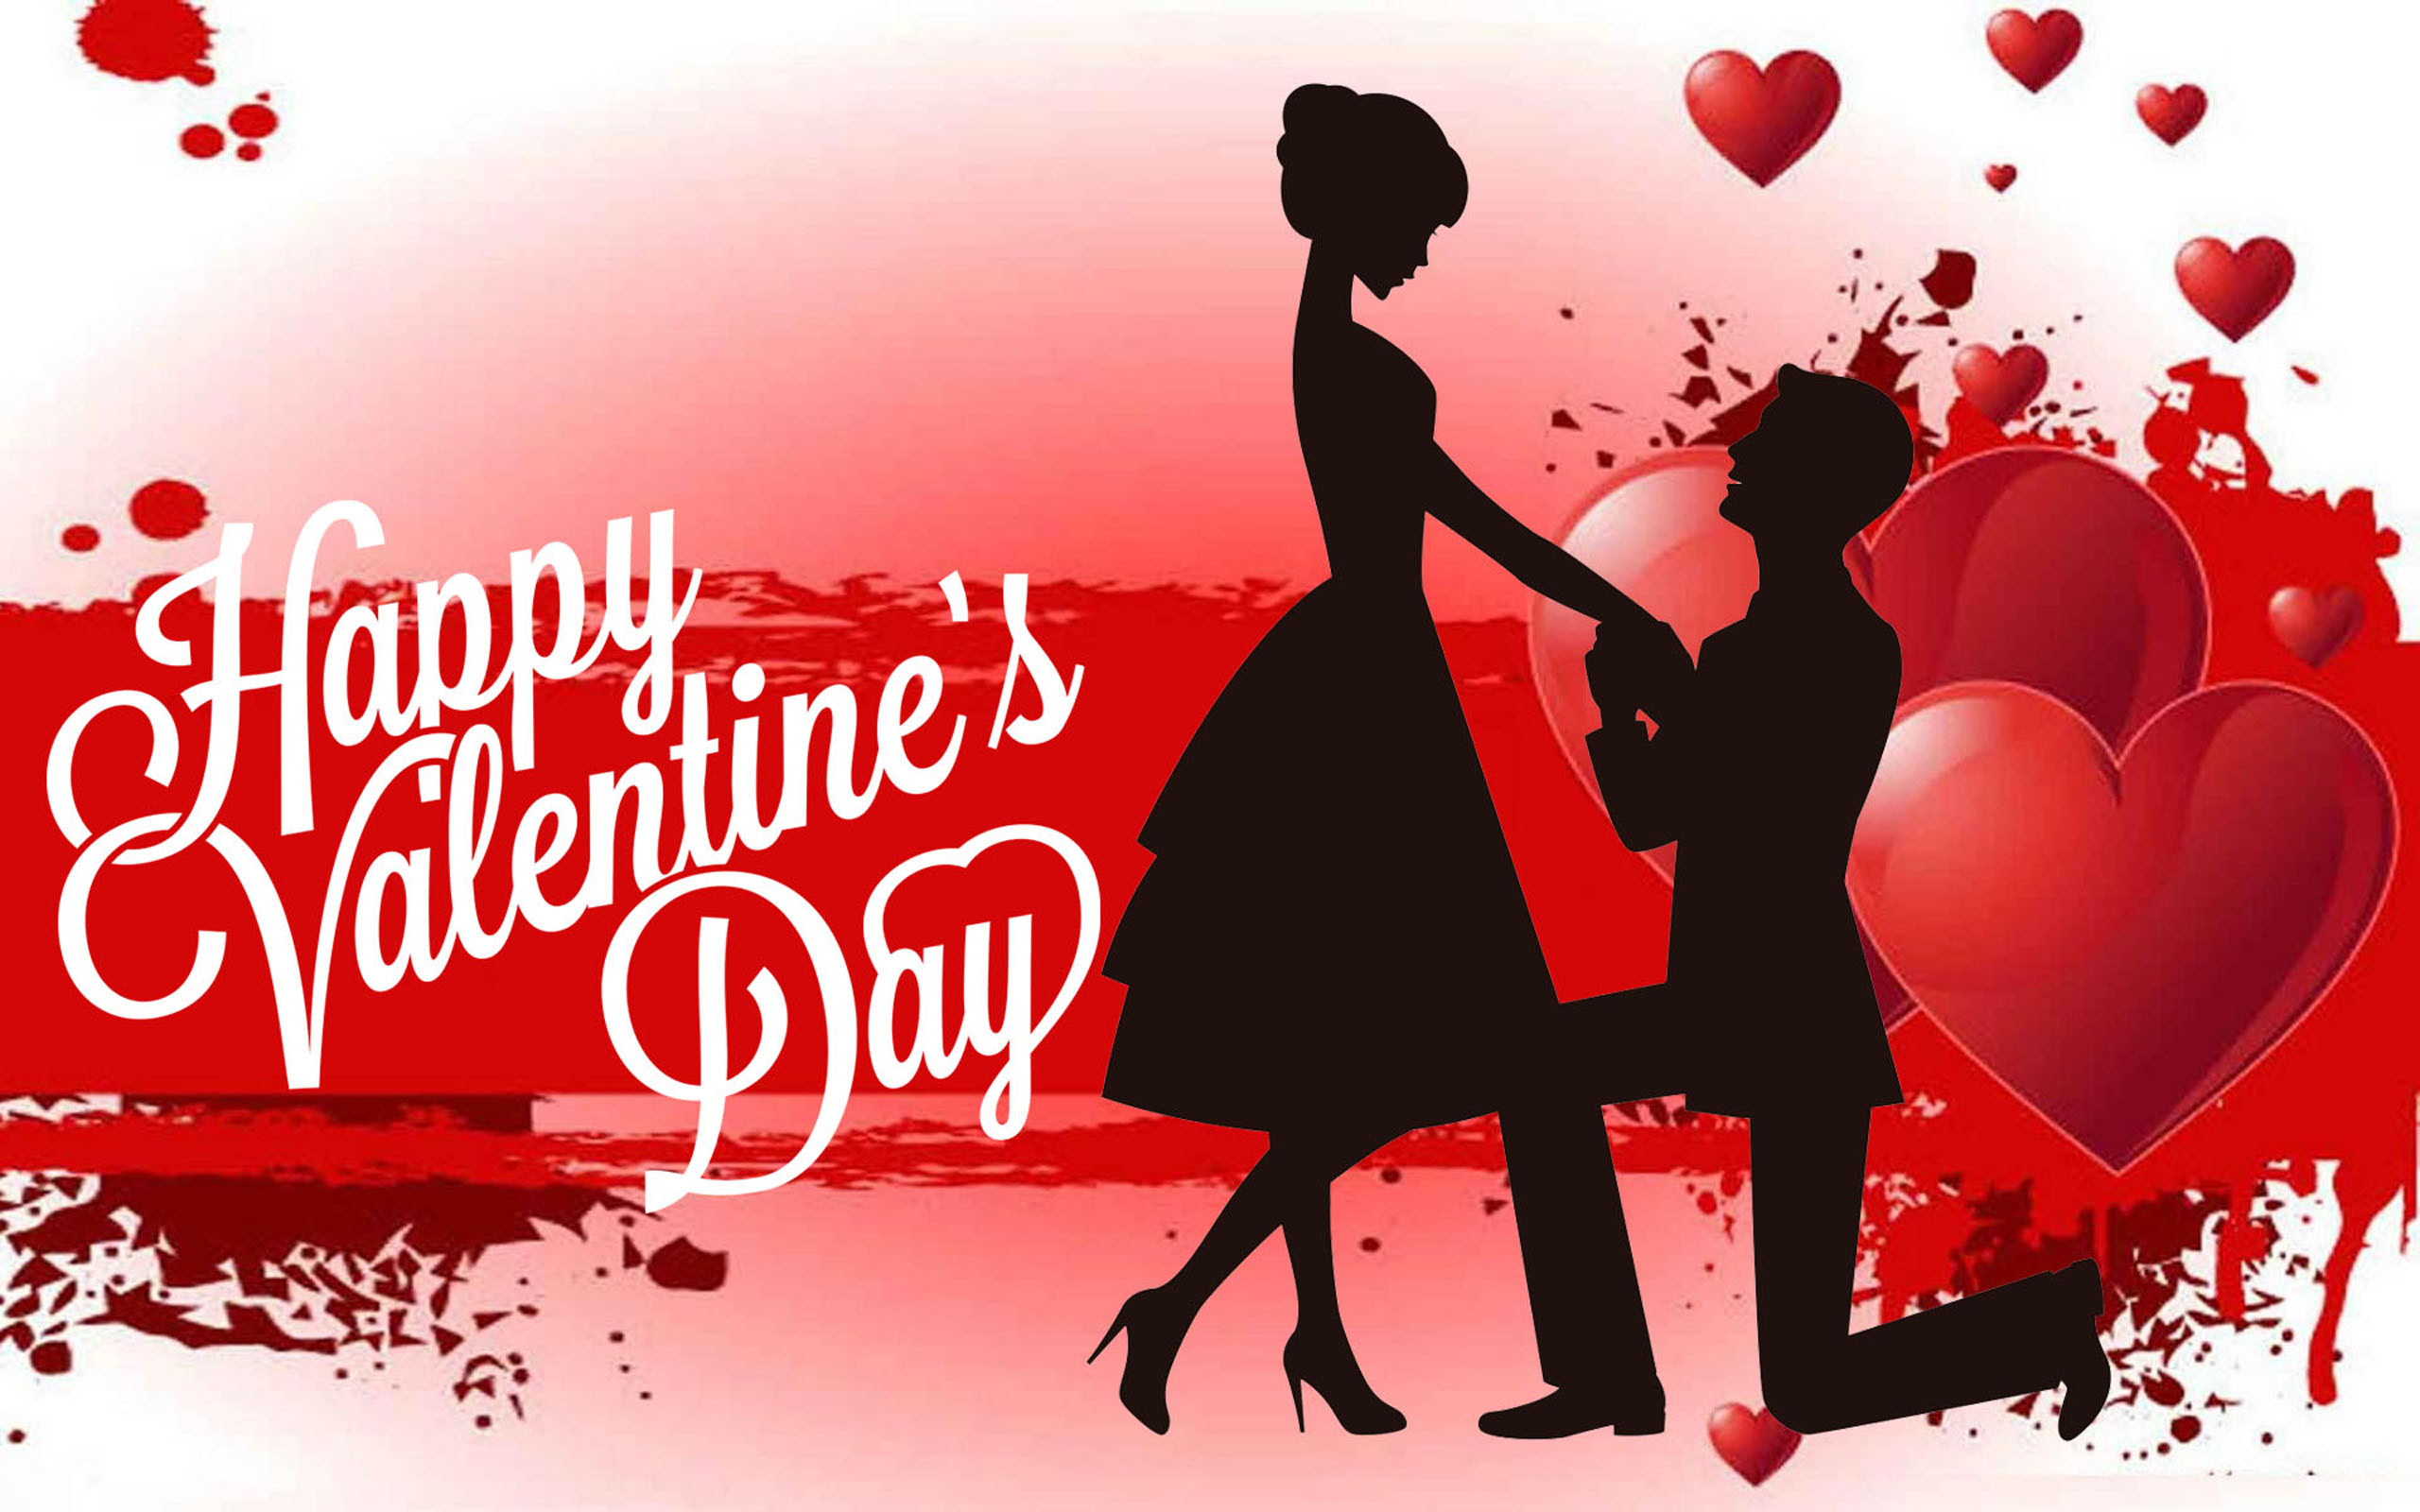 Girl Boy Love Birds Wallpaper Download Happy Valentines Day Red Heart Love Couple Photos For